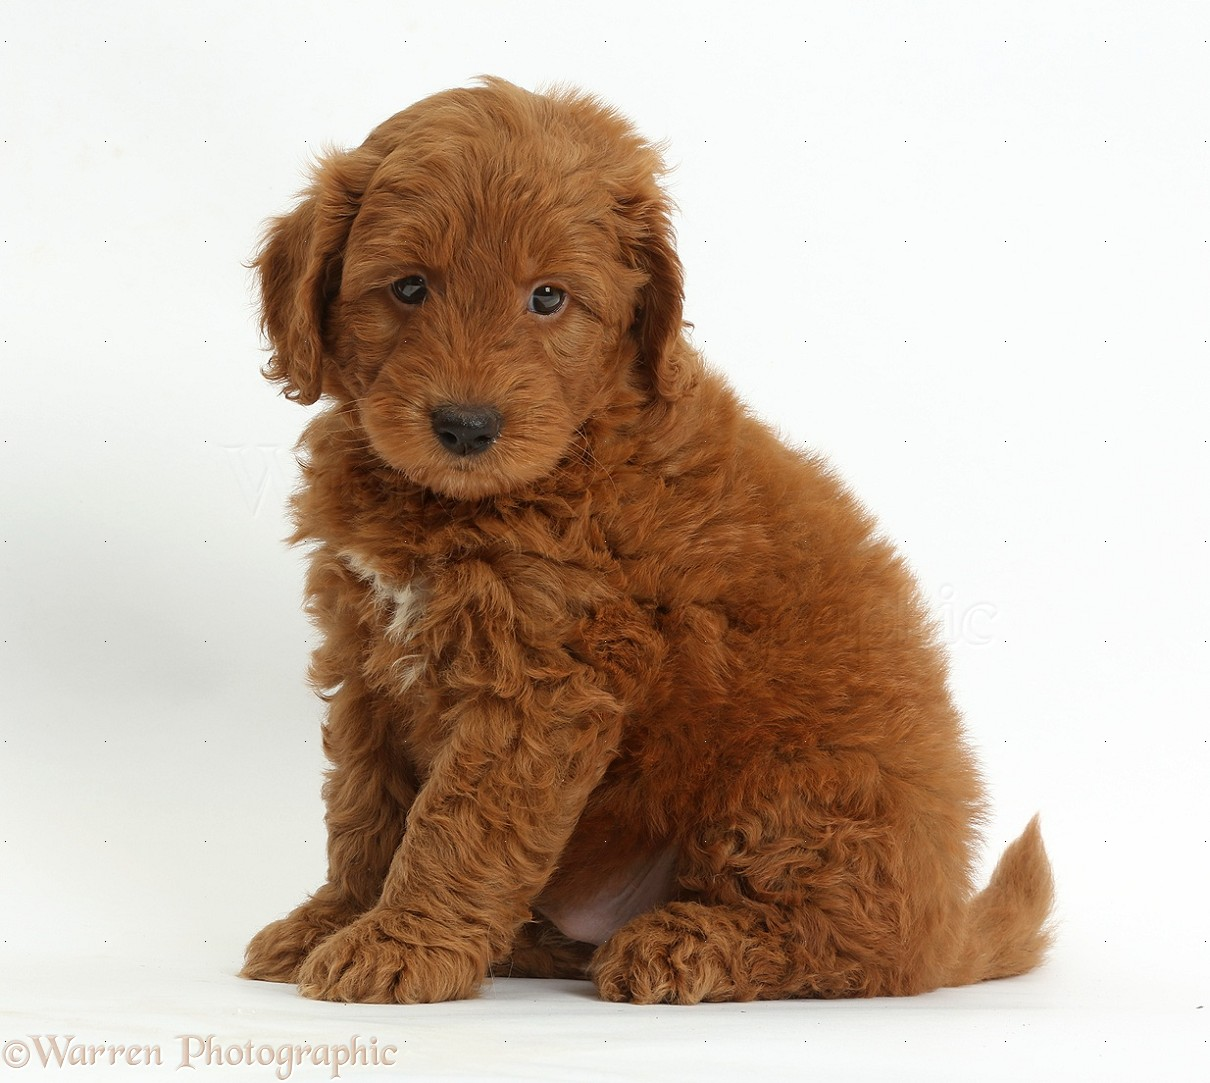 Dog Cute Red F1b Goldendoodle Puppy Sitting Photo Wp37276